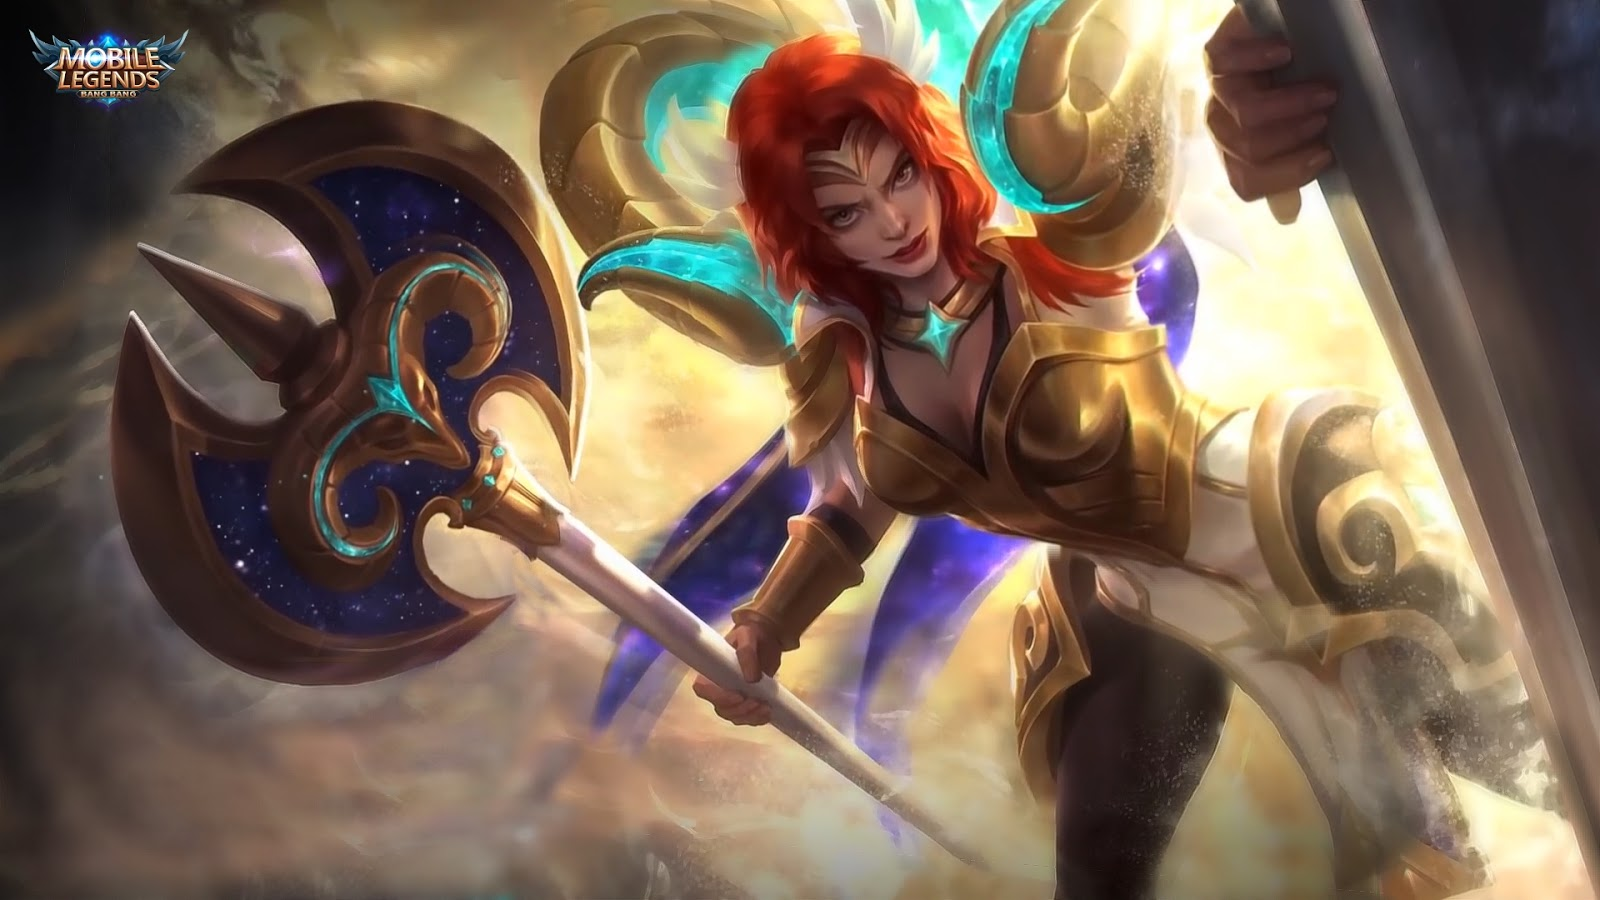 Minotaur Mobile Legends Wallpapers Posted By John Thompson